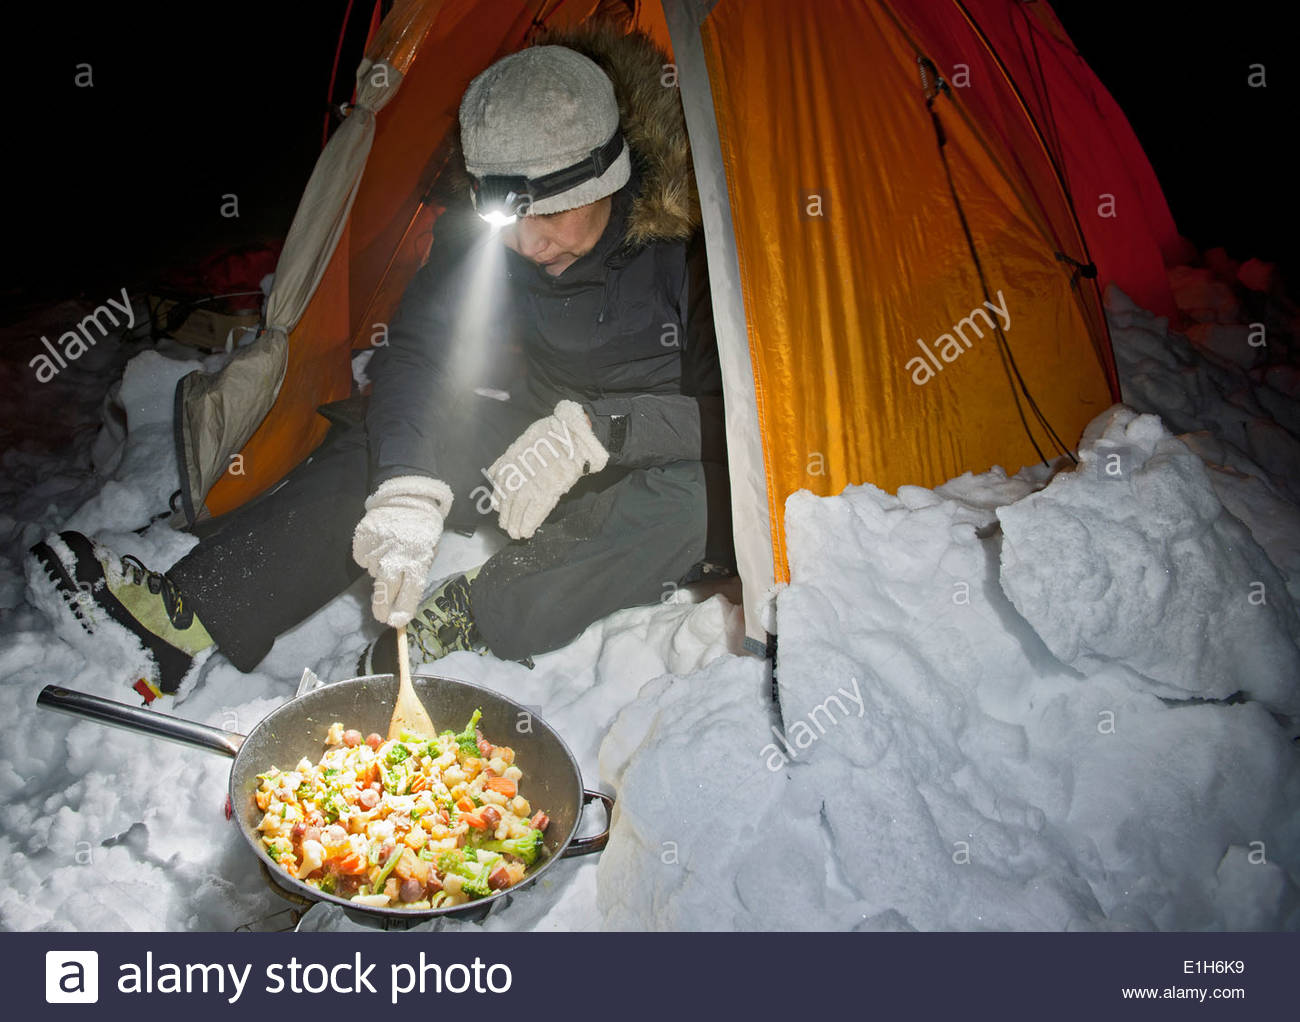 Mature woman cooking outside tent at night, Langjokull glacier, South Iceland - Stock Image